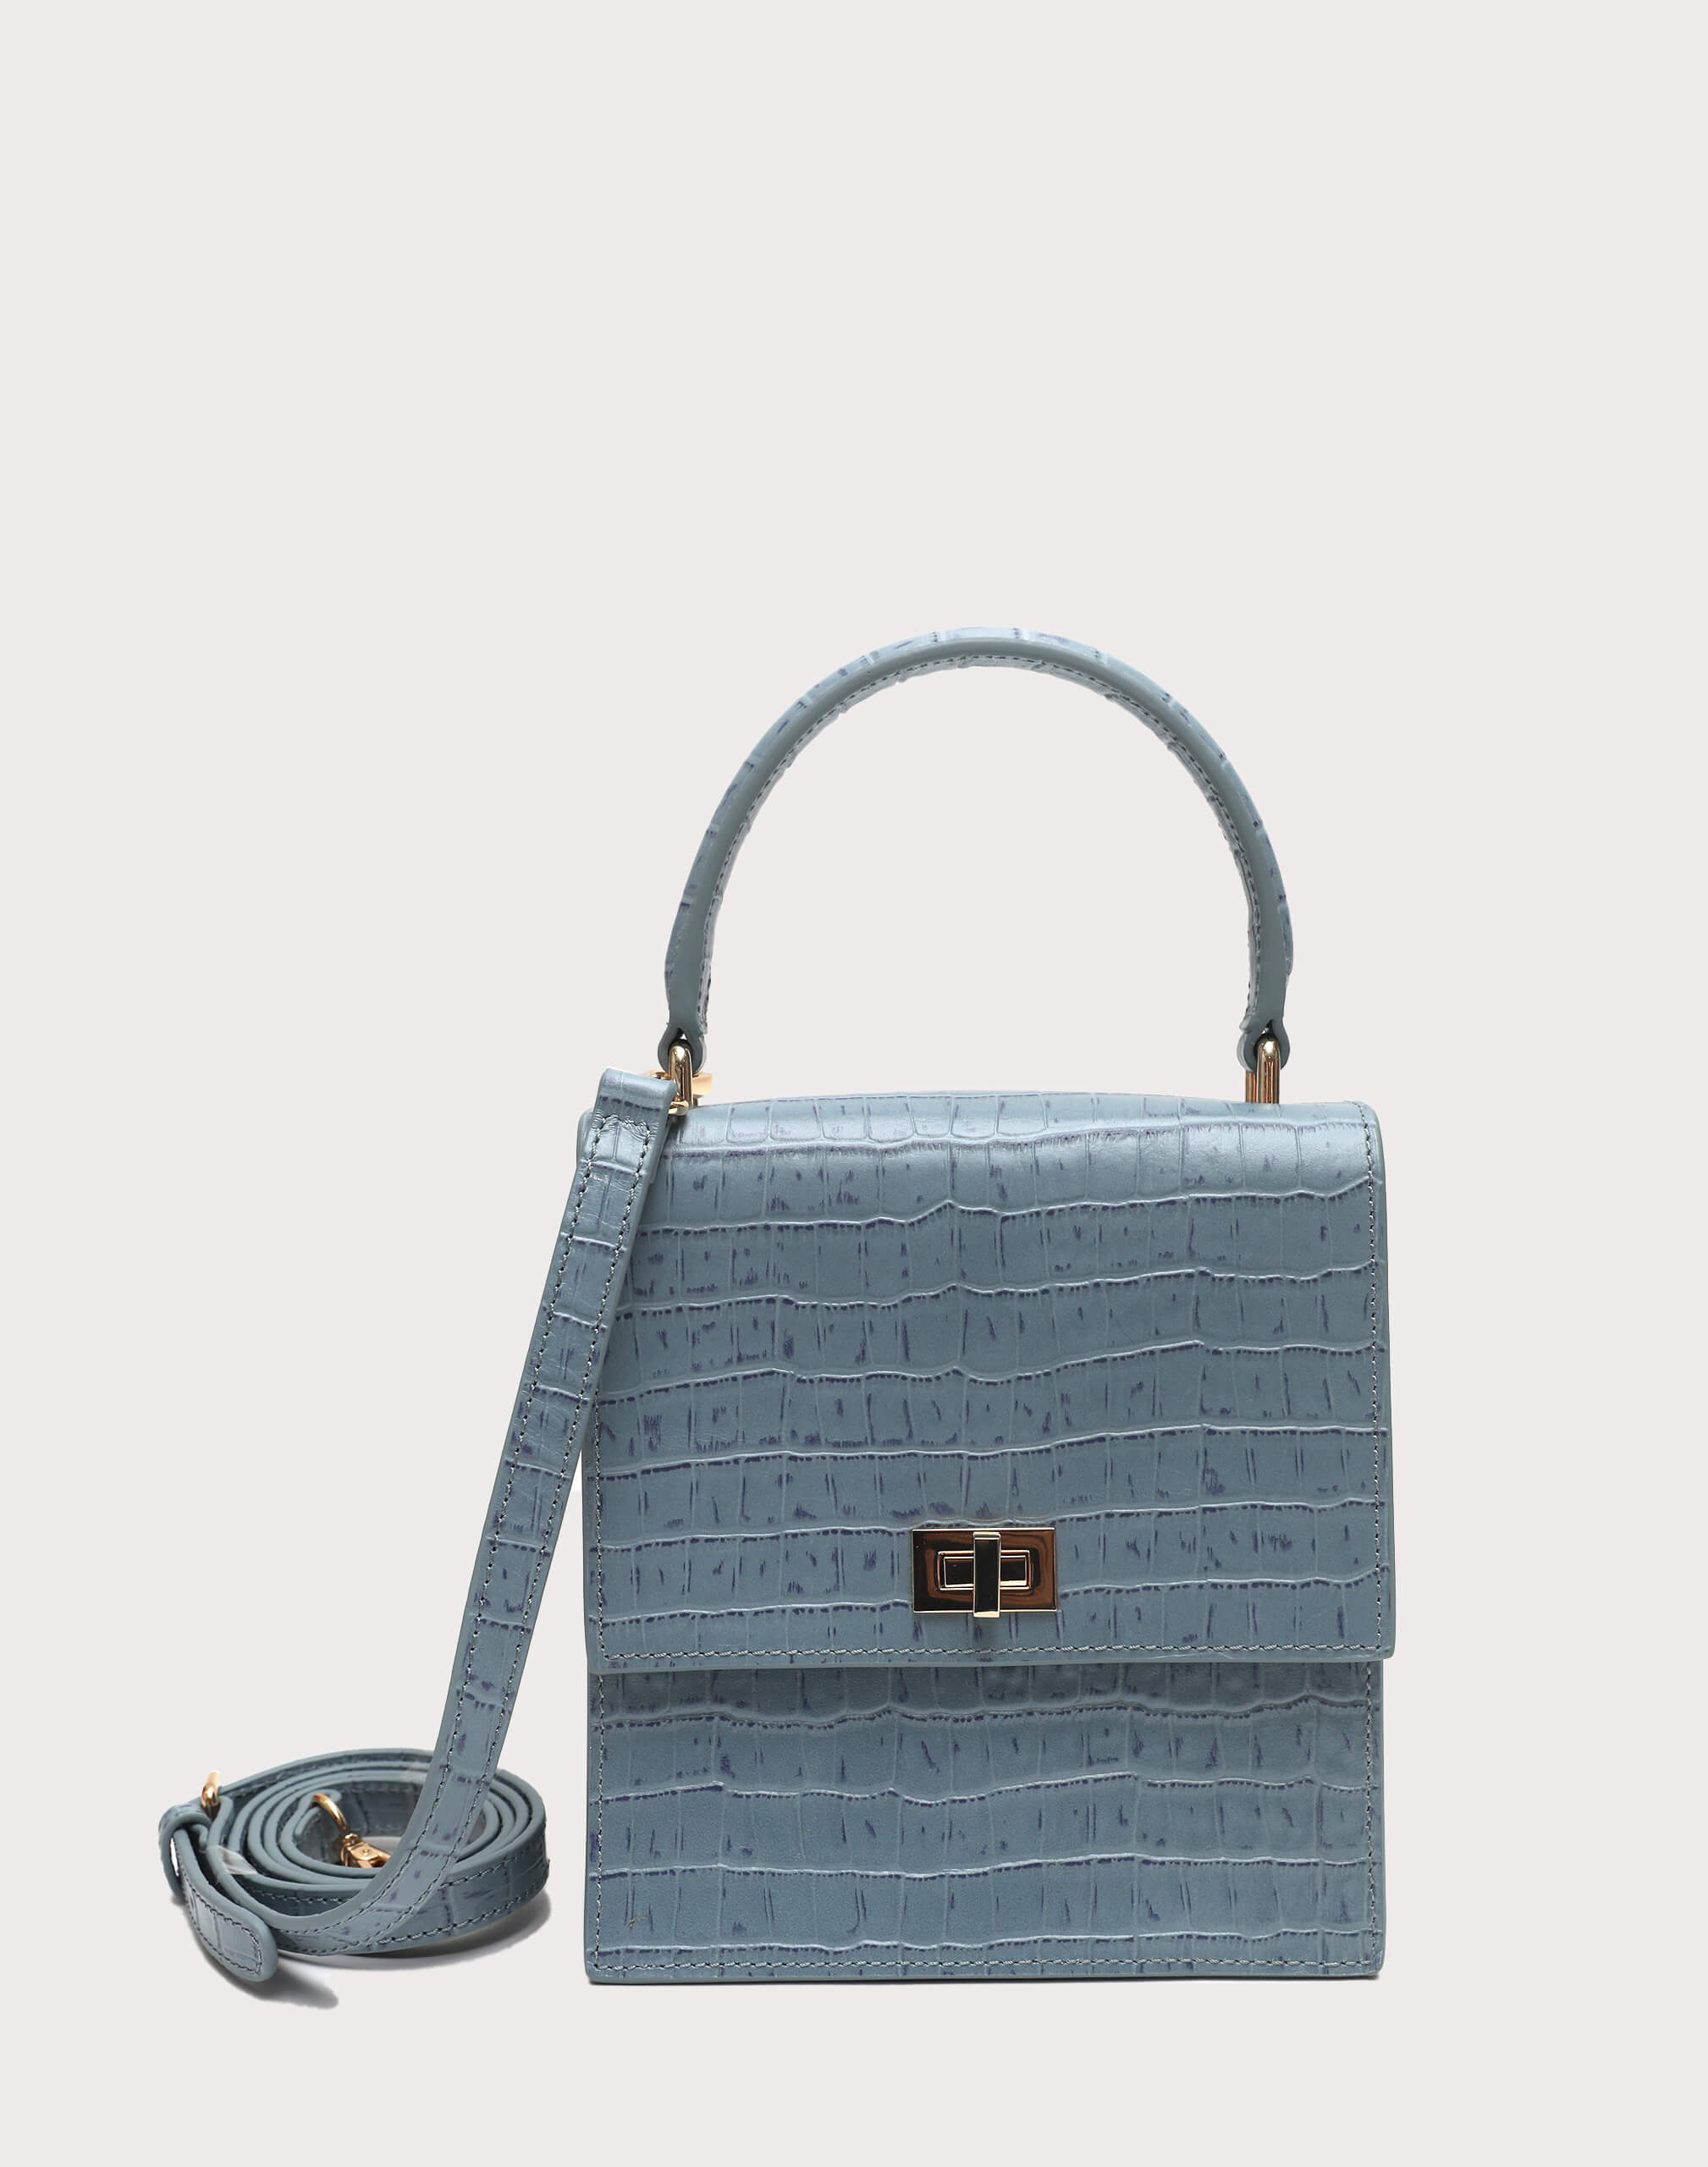 Neely & Chloe No. 19 Mini Lady Bag Croc Strap View Steel Blue